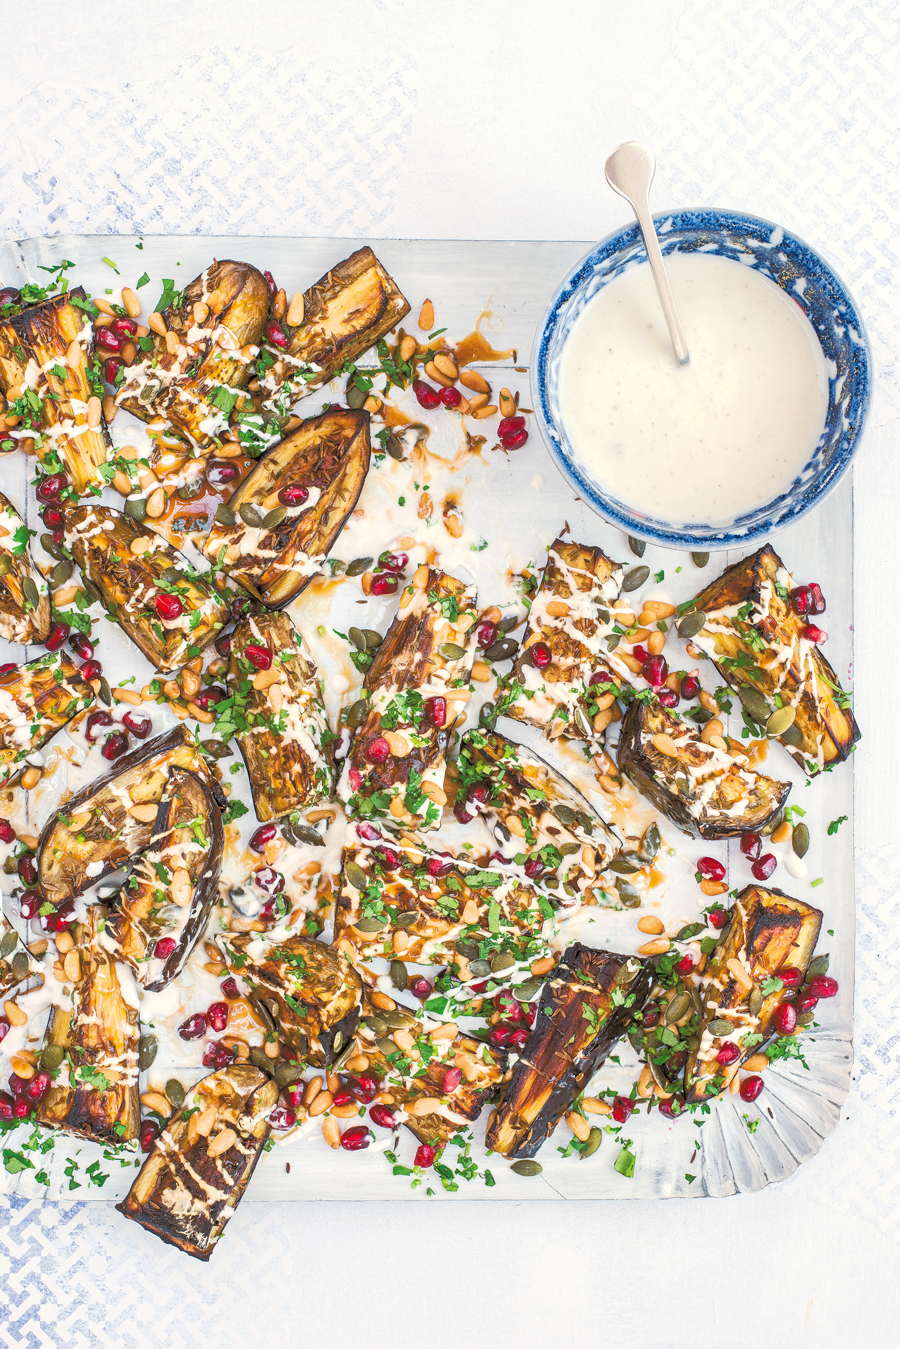 HH-Sirocco-DAy-3-Cumin-Roasted-Aubergine-19605.png